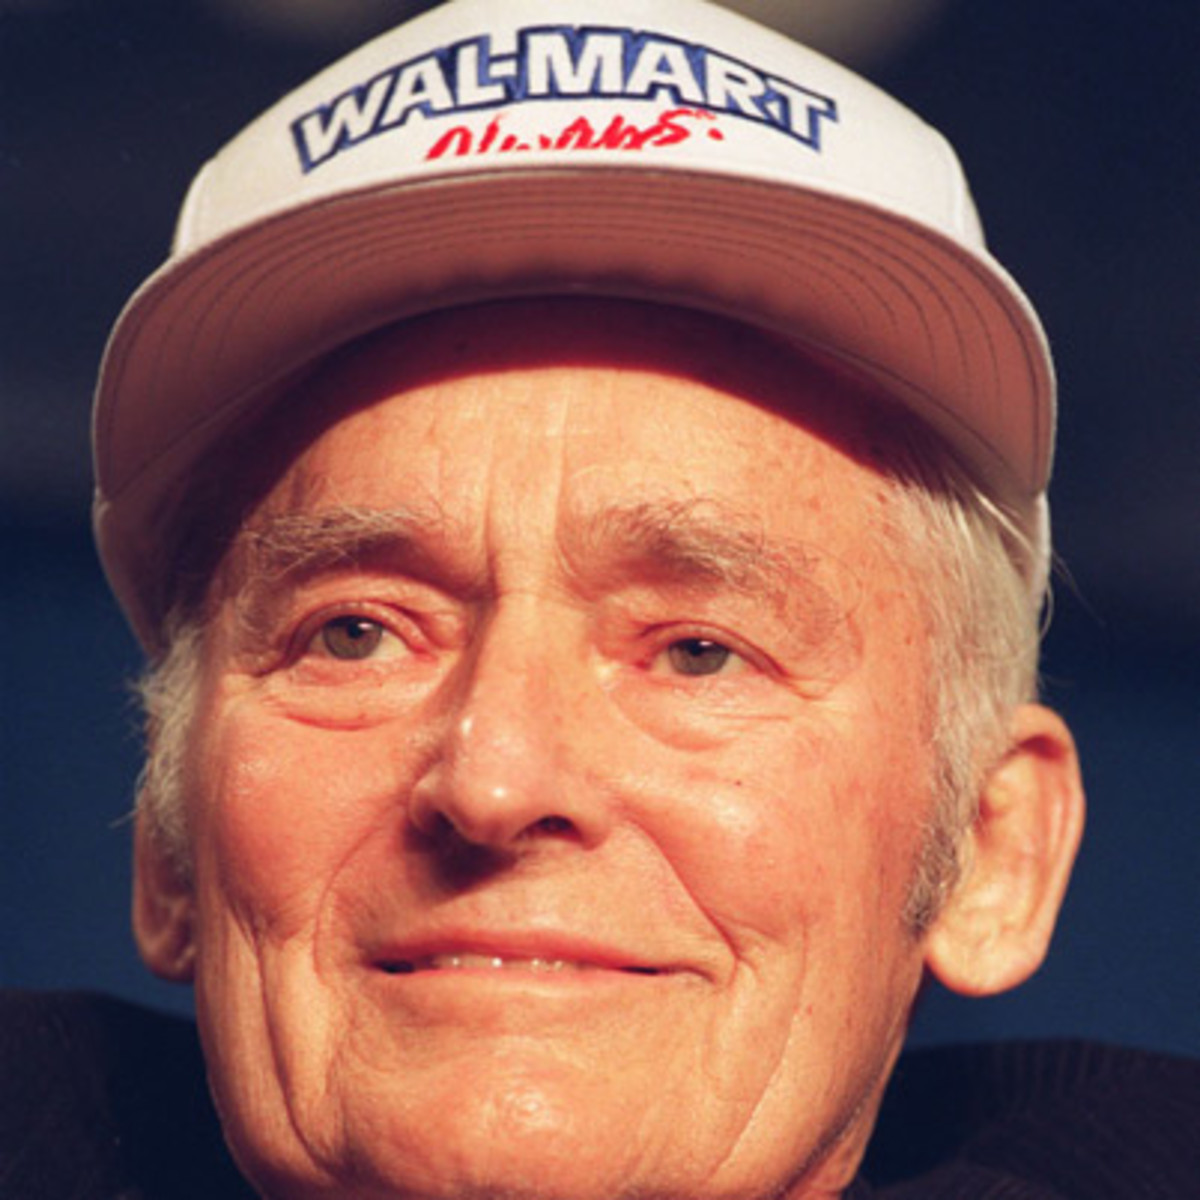 a history of the founding of the wal mart corporation by sam walton Walmart founder sam walton moved to bentonville, arkansas, in 1950 associated press walmart's headquarters are located in bentonville, arkansas.